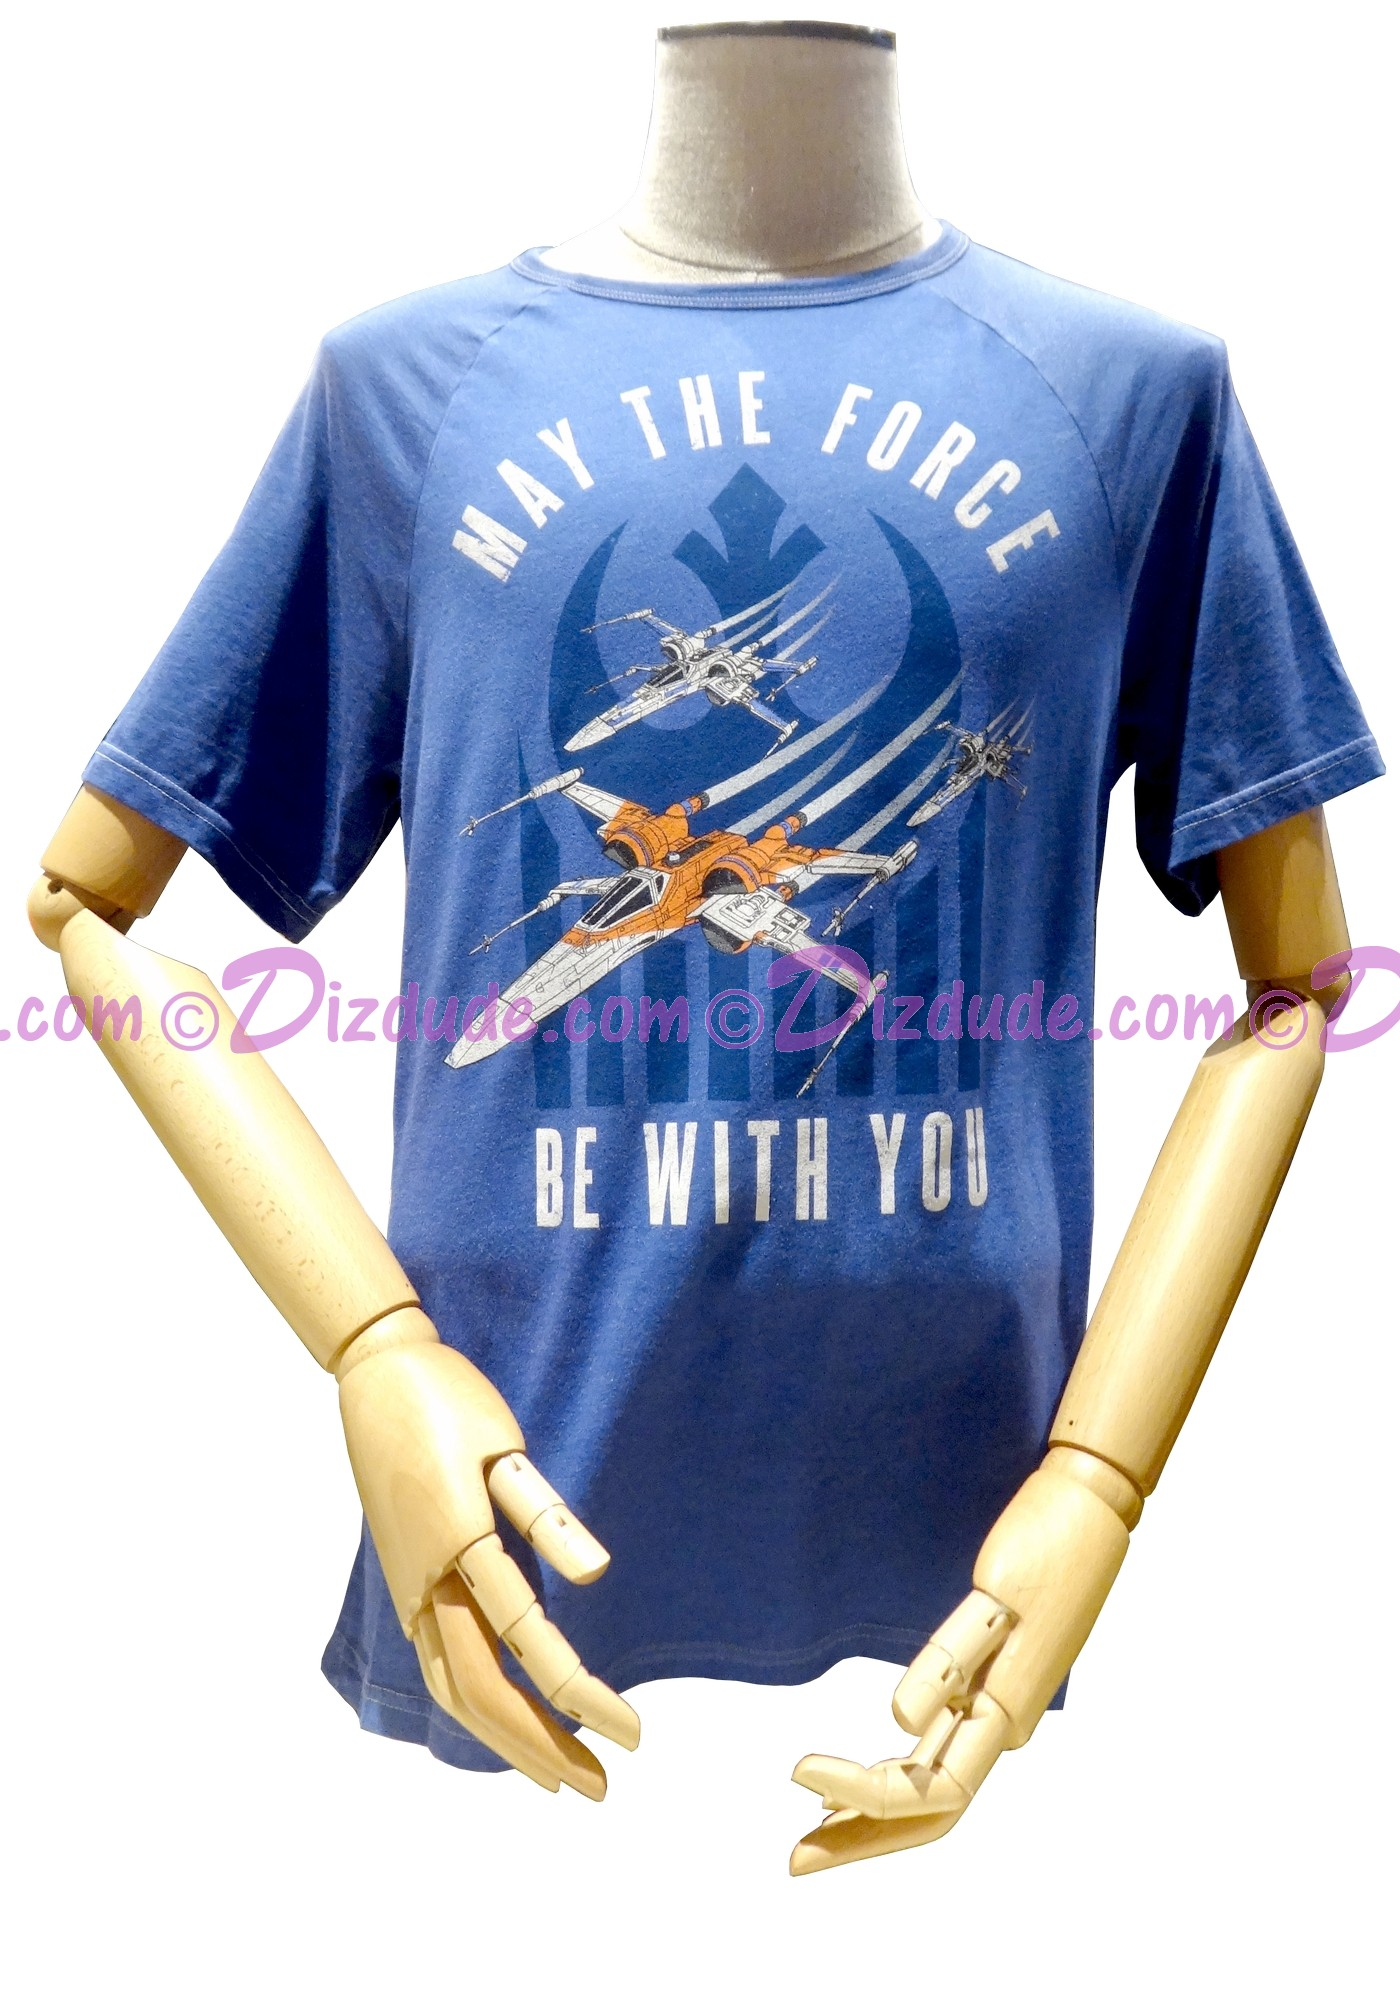 Disney Star Wars The Rise Of Skywalker May The Force Be With You Adult T-Shirt (Tshirt, T shirt or Tee) © Dizdude.com